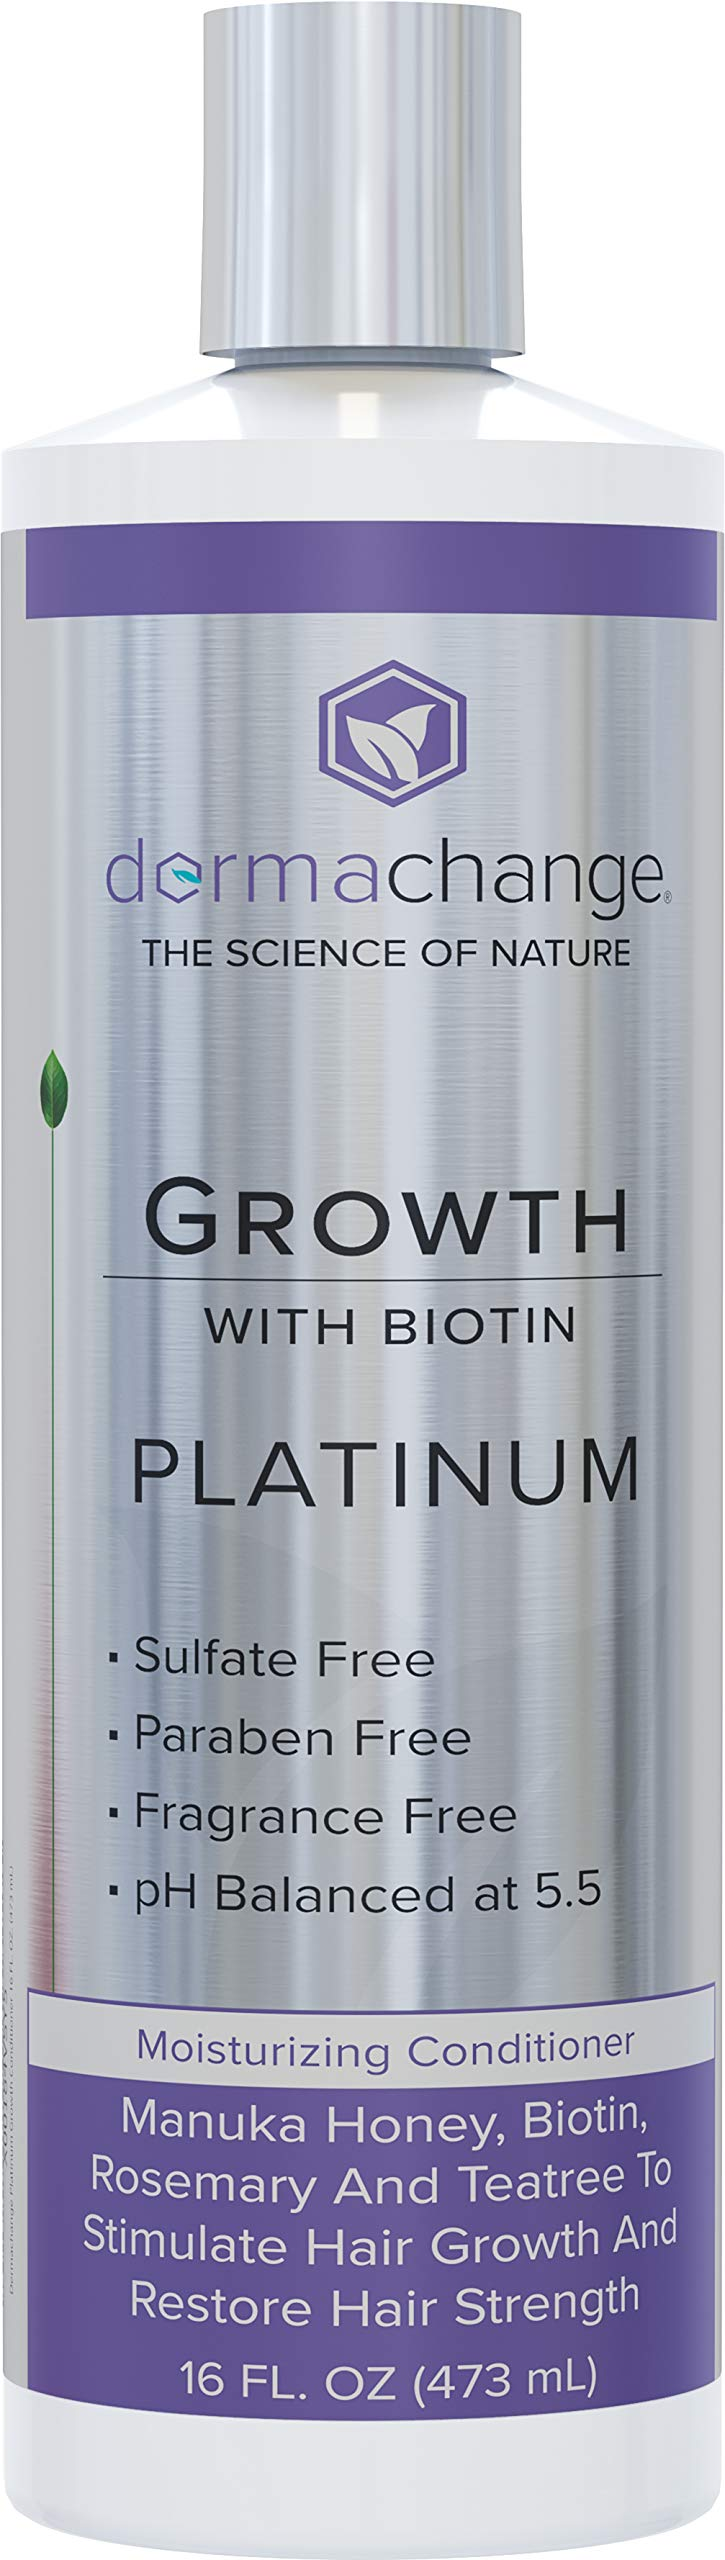 Platinum Hair Growth Moisturizing Conditioner - With Argan Oil, Biotin & Tea Tree Extract - Supports Hair Regrowth - Hair Loss Treatments (16 oz) - Made in USA by DermaChange